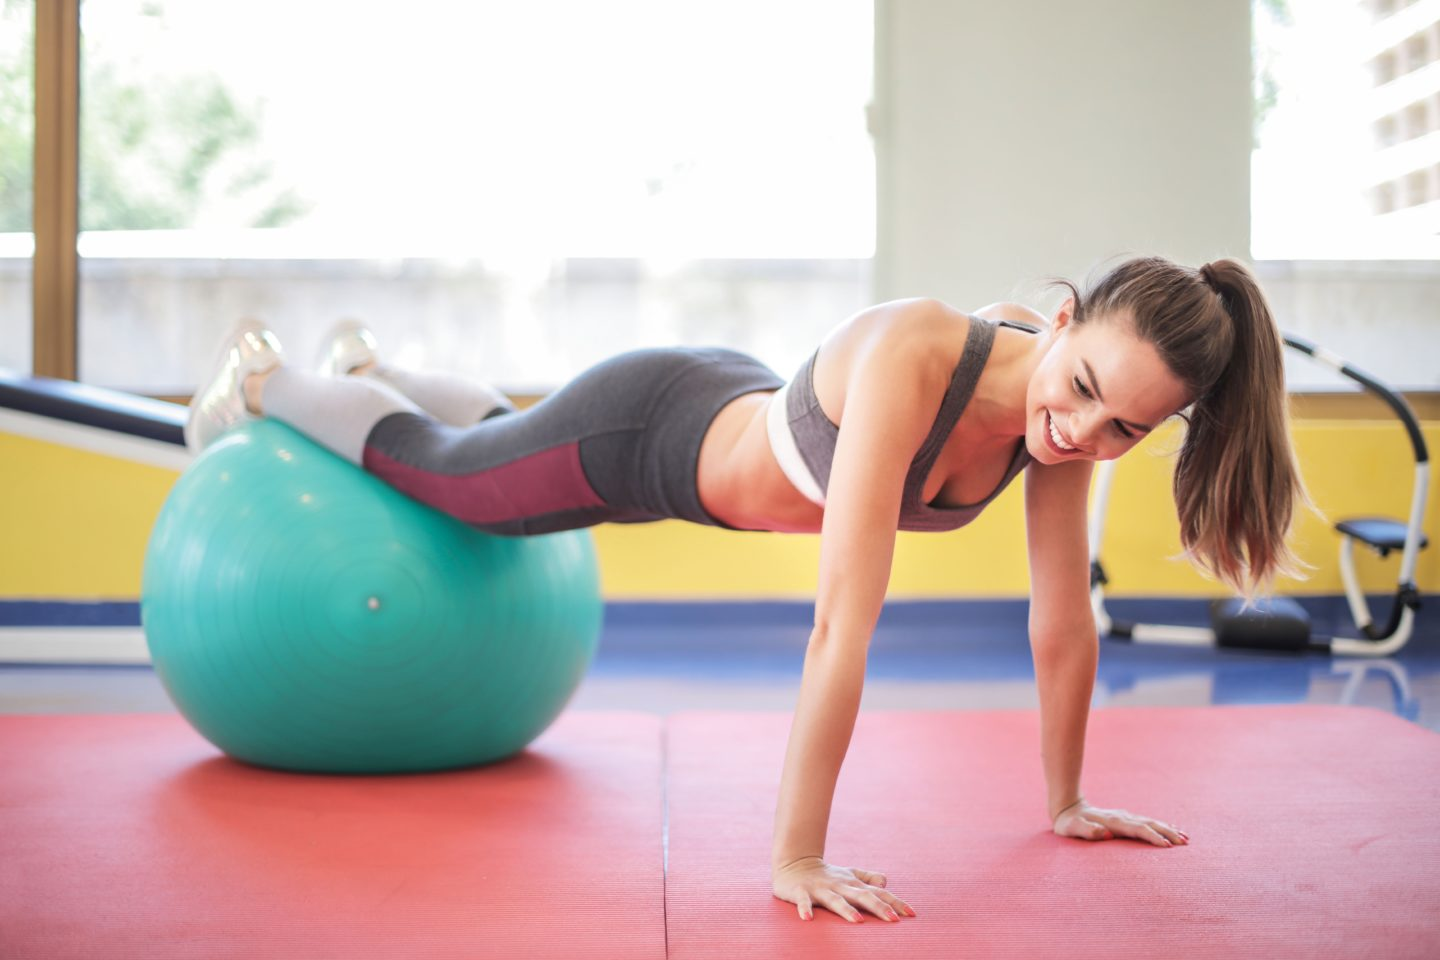 My Top Tips for Starting at the Gym